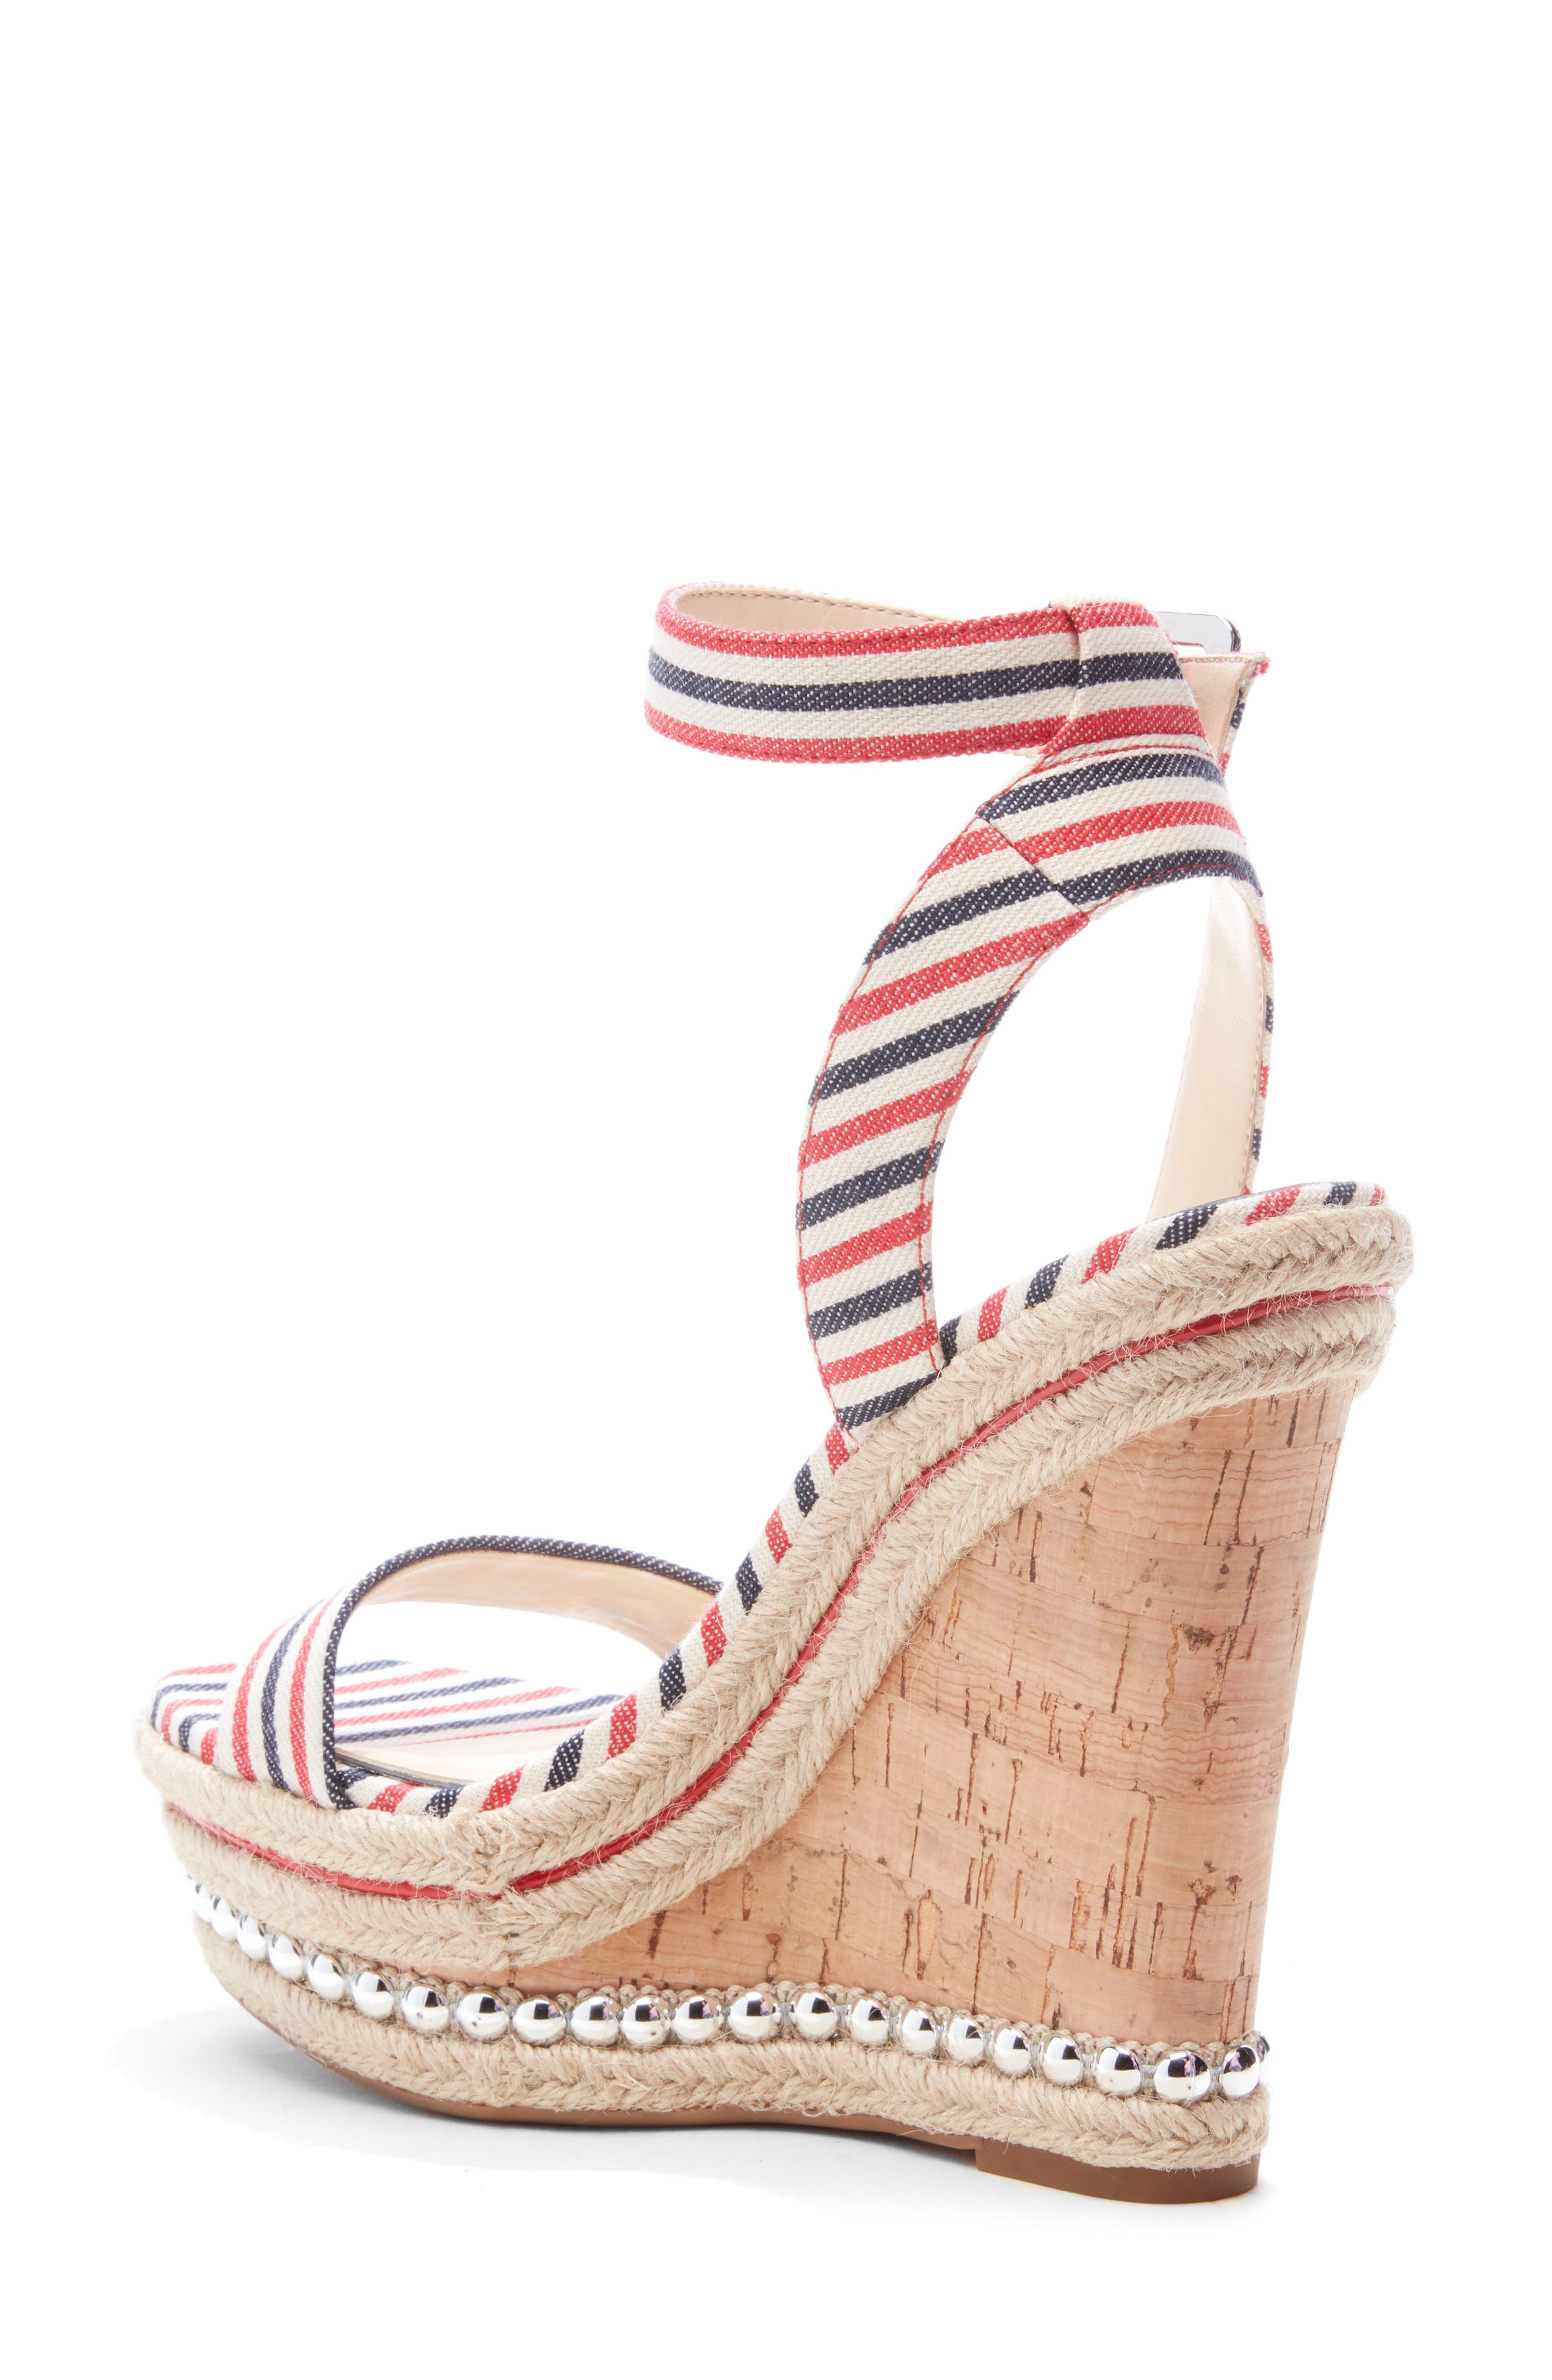 2e82b77ebc03 Women s Jessica Simpson Wedge Sandals